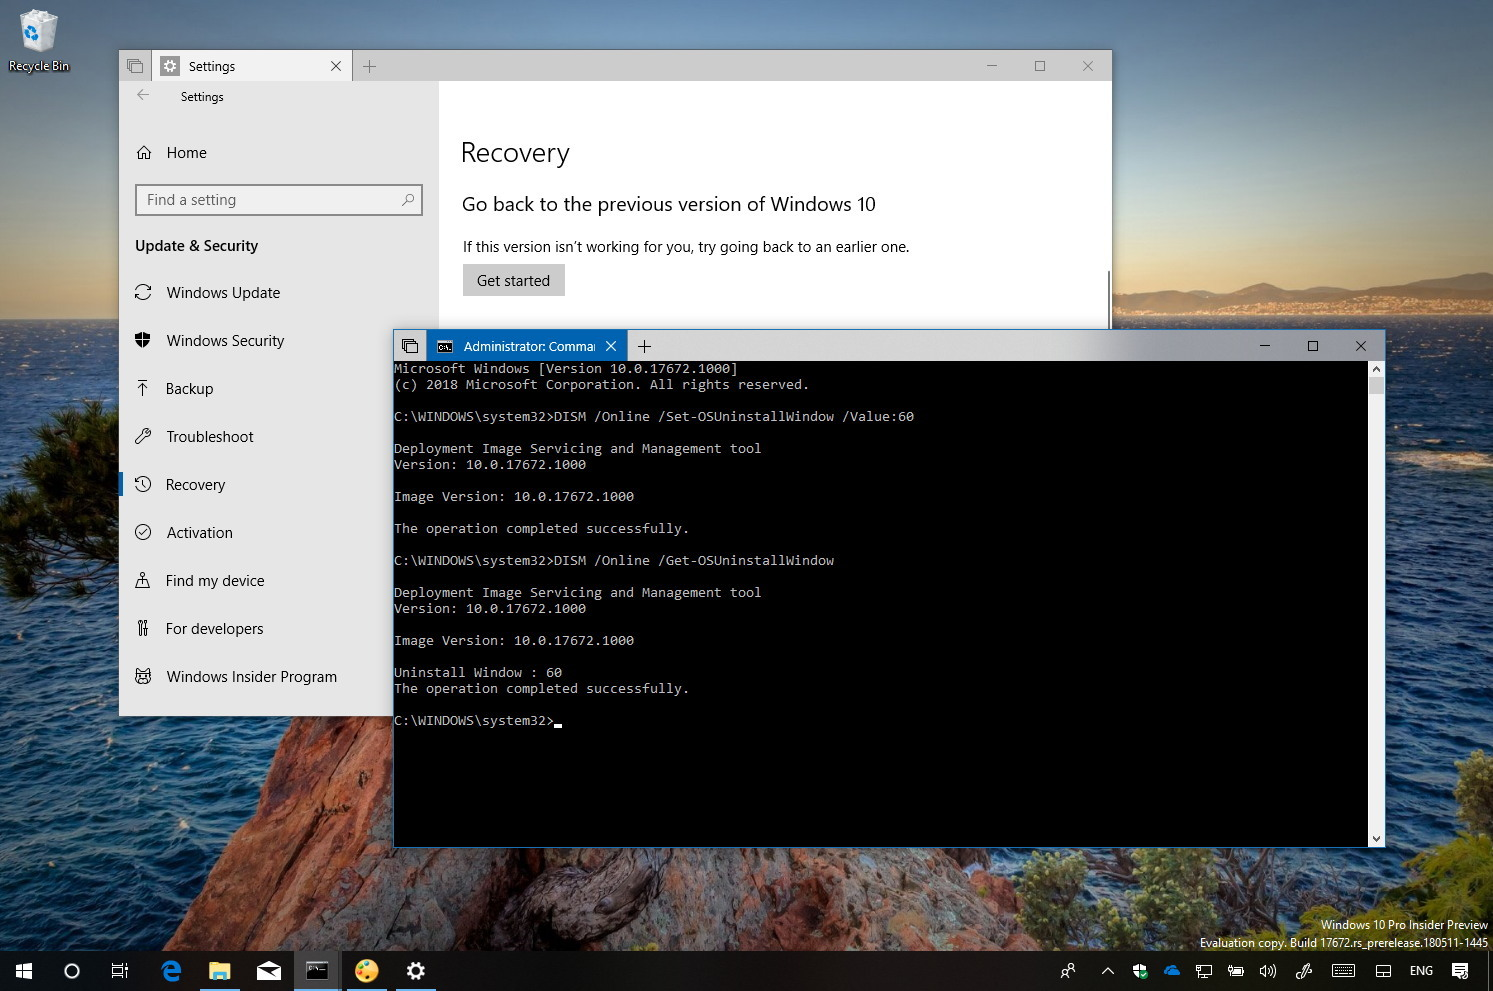 How to extend time to uninstall a Windows 10 upgrade